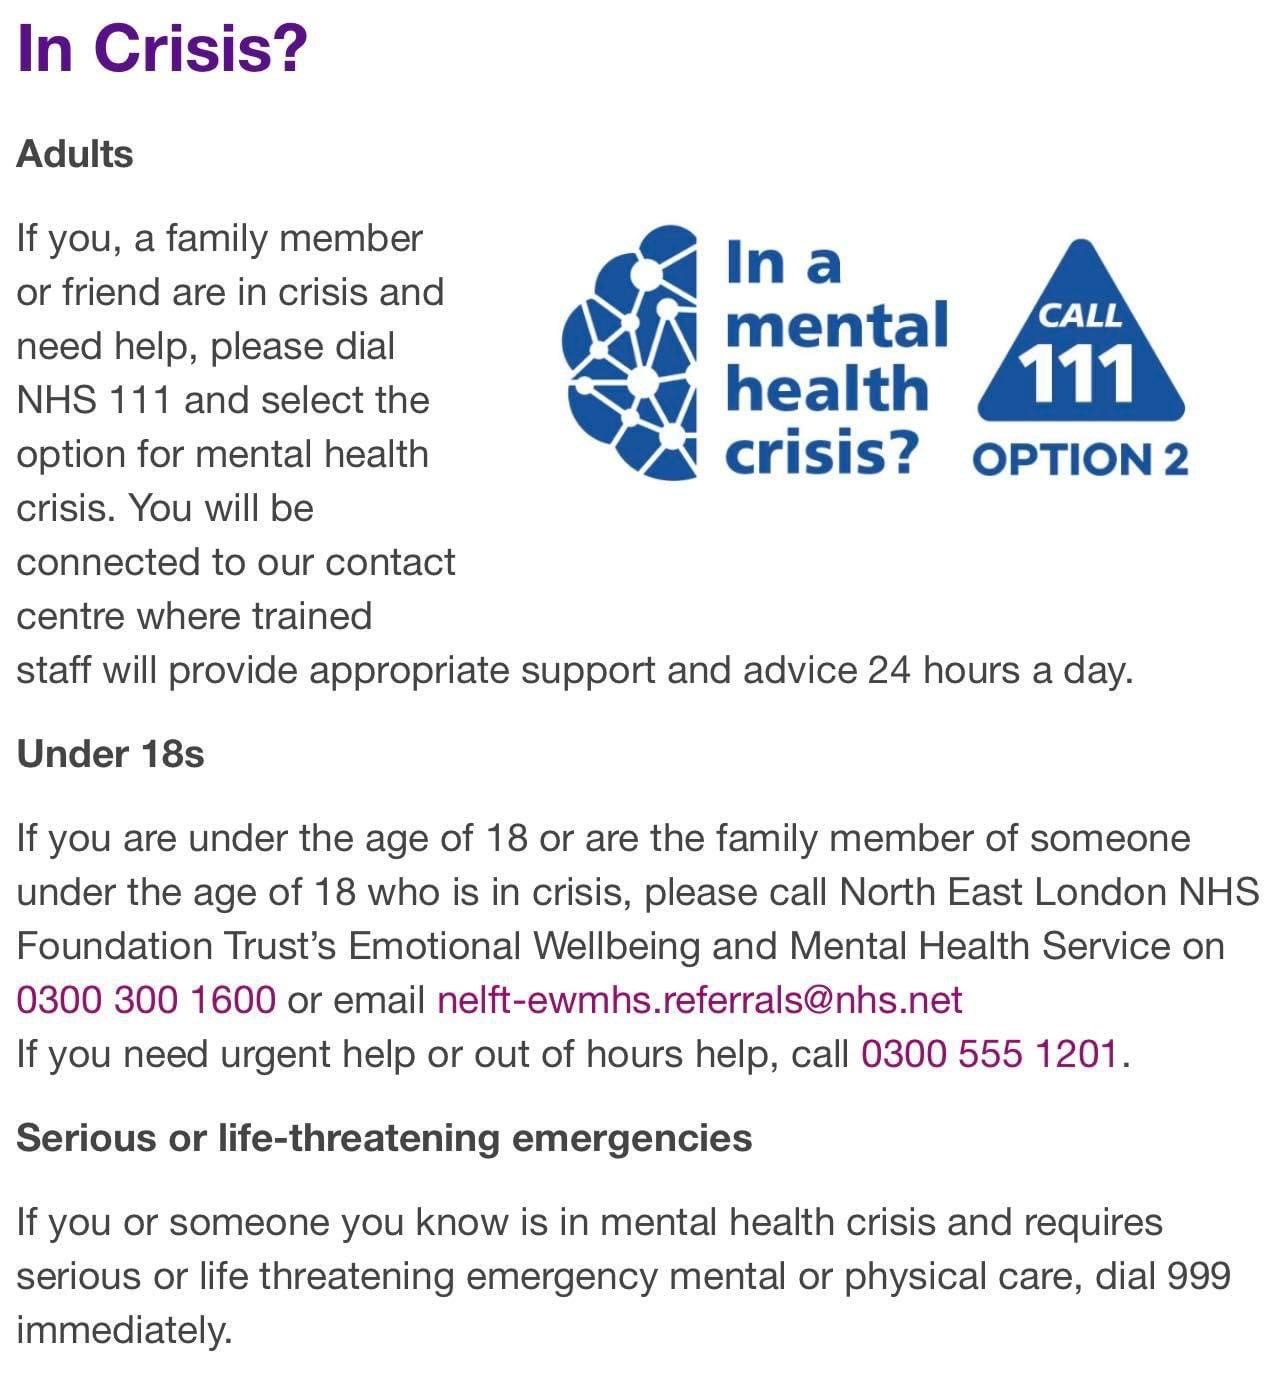 Information showing instructions for dialing 111 and selecting option for MH if you or a friend are in crisis